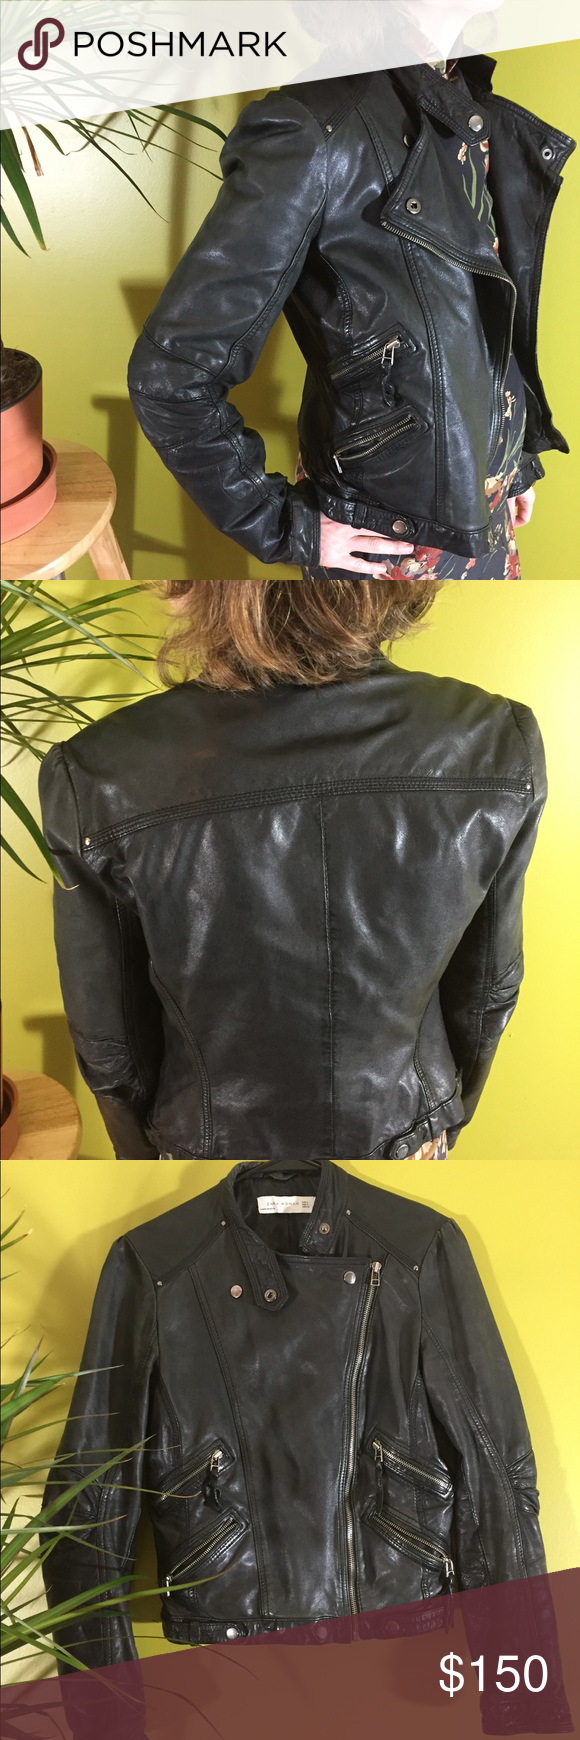 Zara Black Leather Jacket Size Small (With images) Black